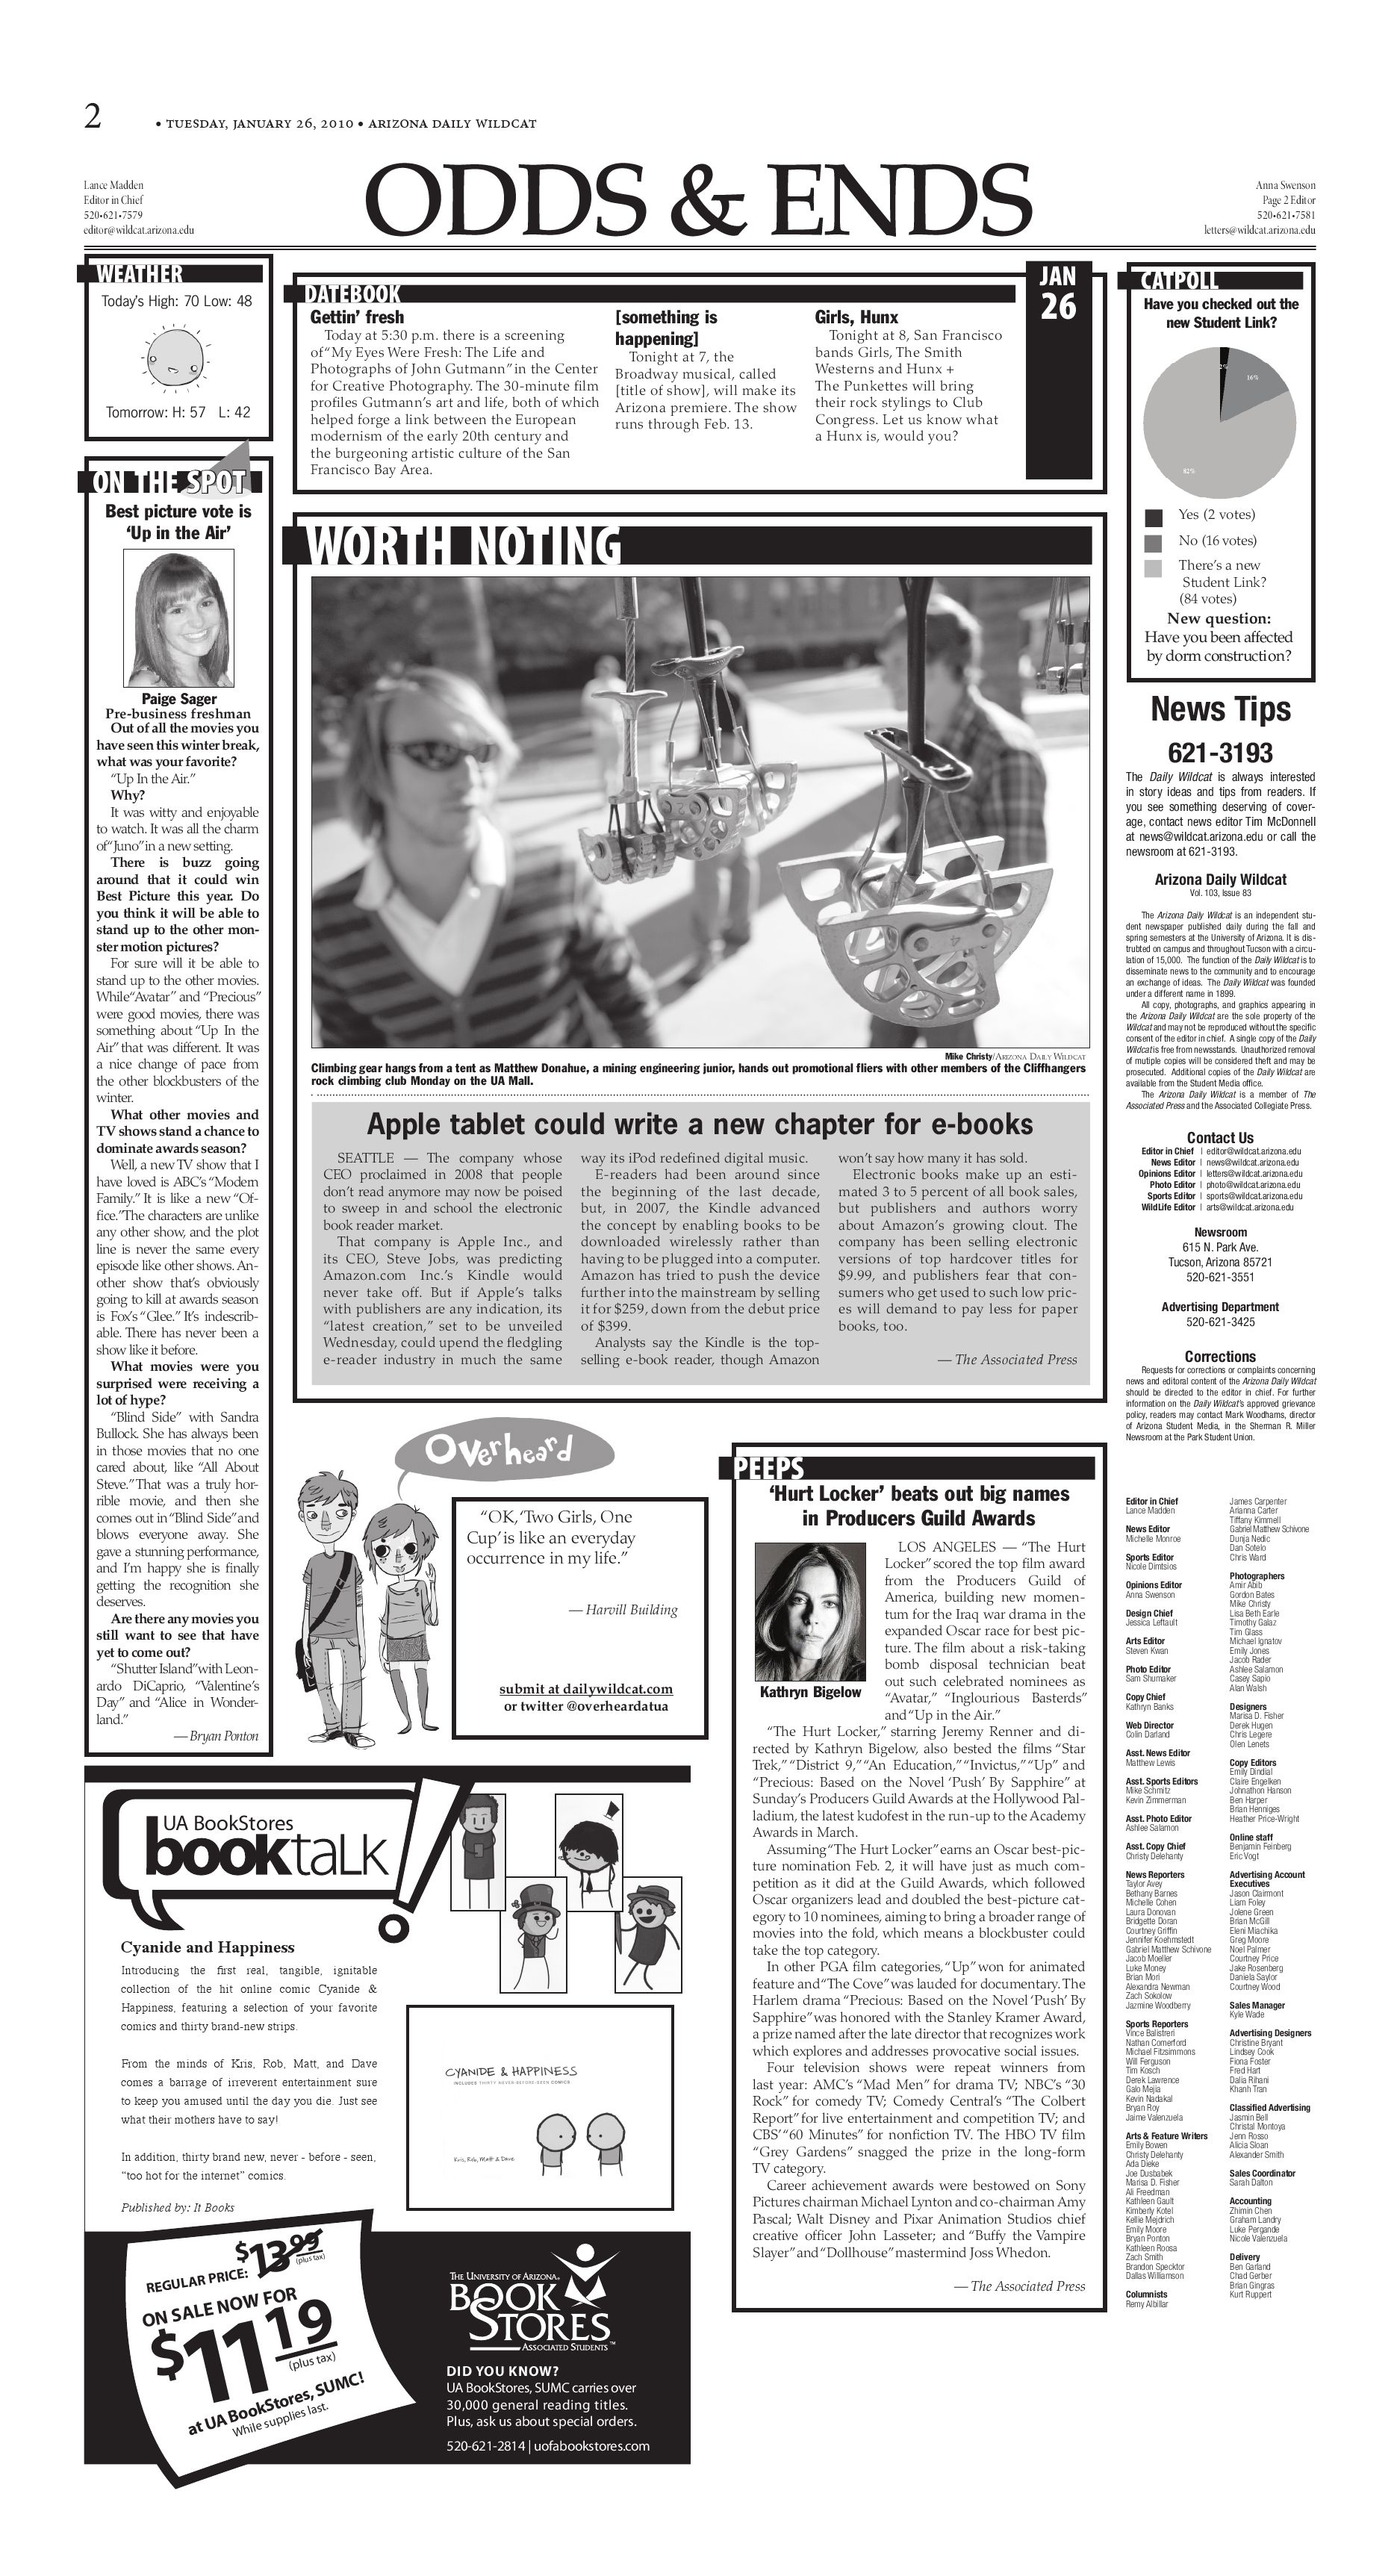 Arizona Daily Wildcat — Jan  26, 2010 by Arizona Daily